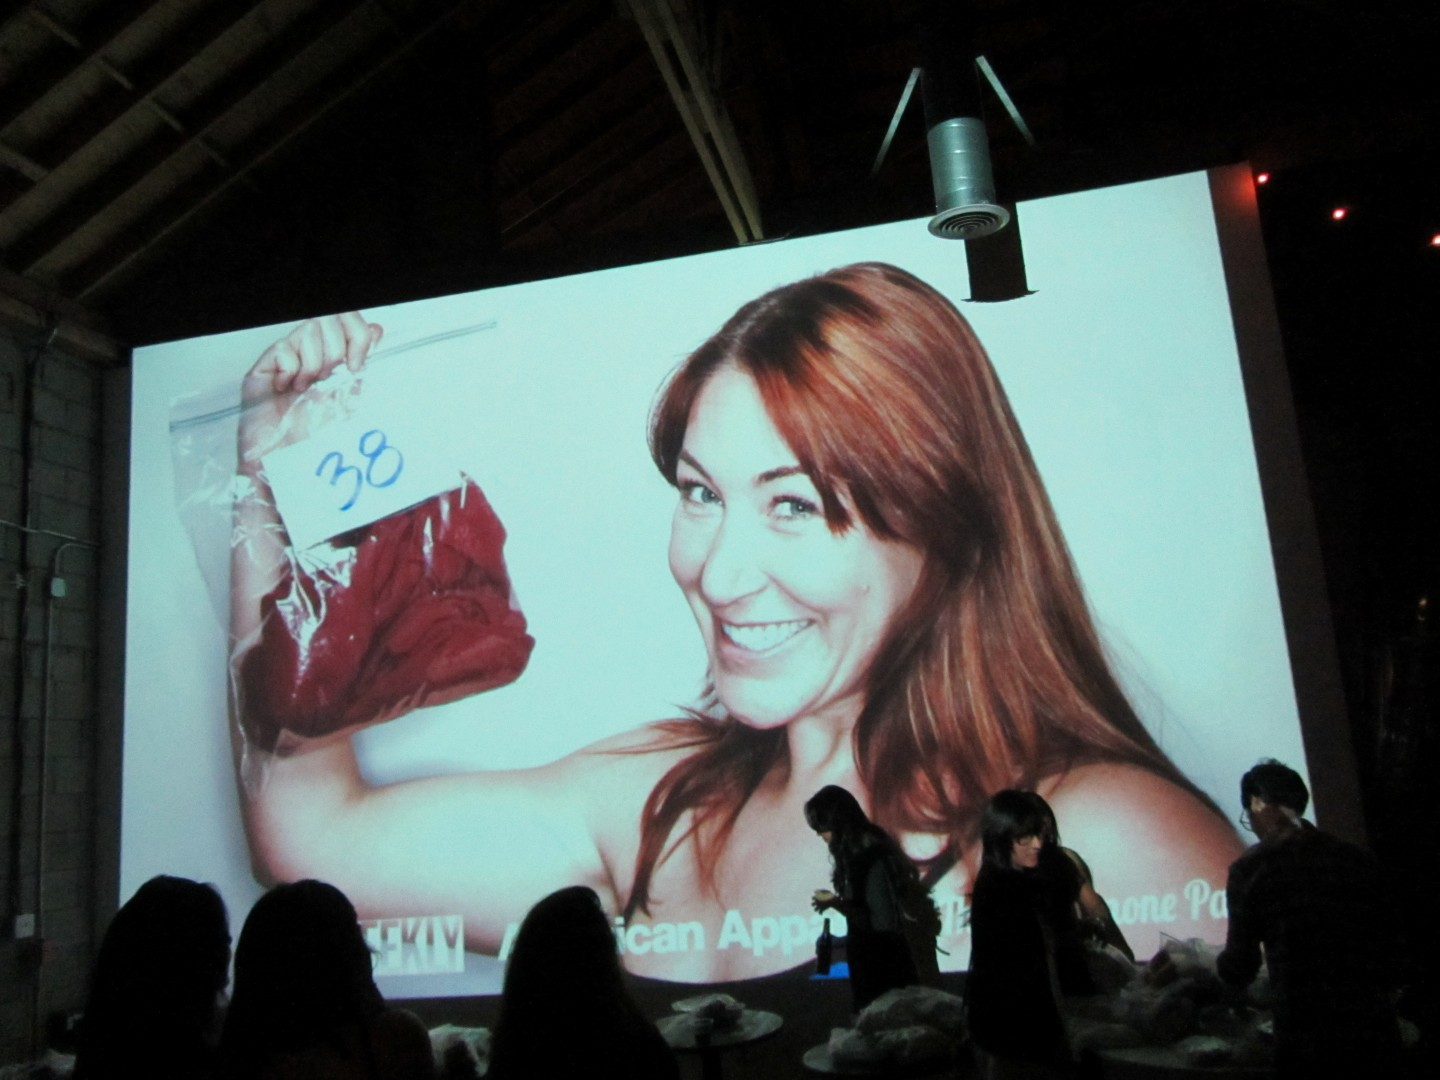 Pheromone Party: a Field Trip to Los Angeles